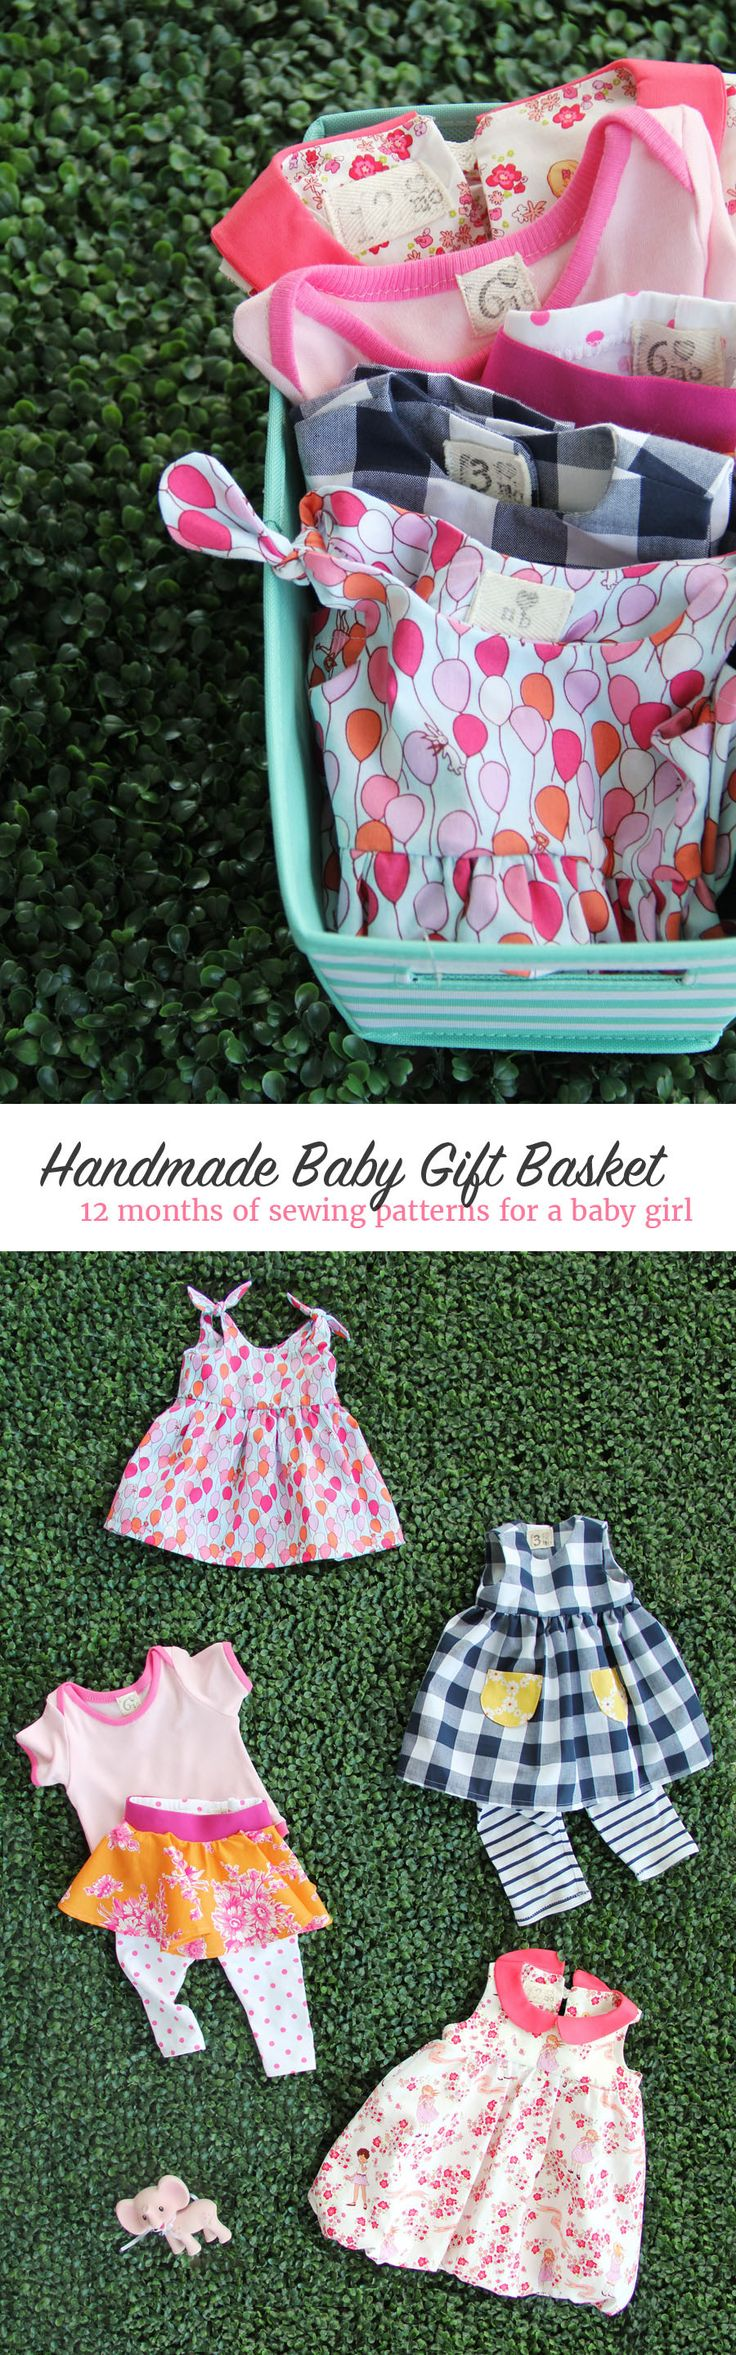 Handmade Baby Gift Basket Idea || 12 months of sewing patterns for a baby girl